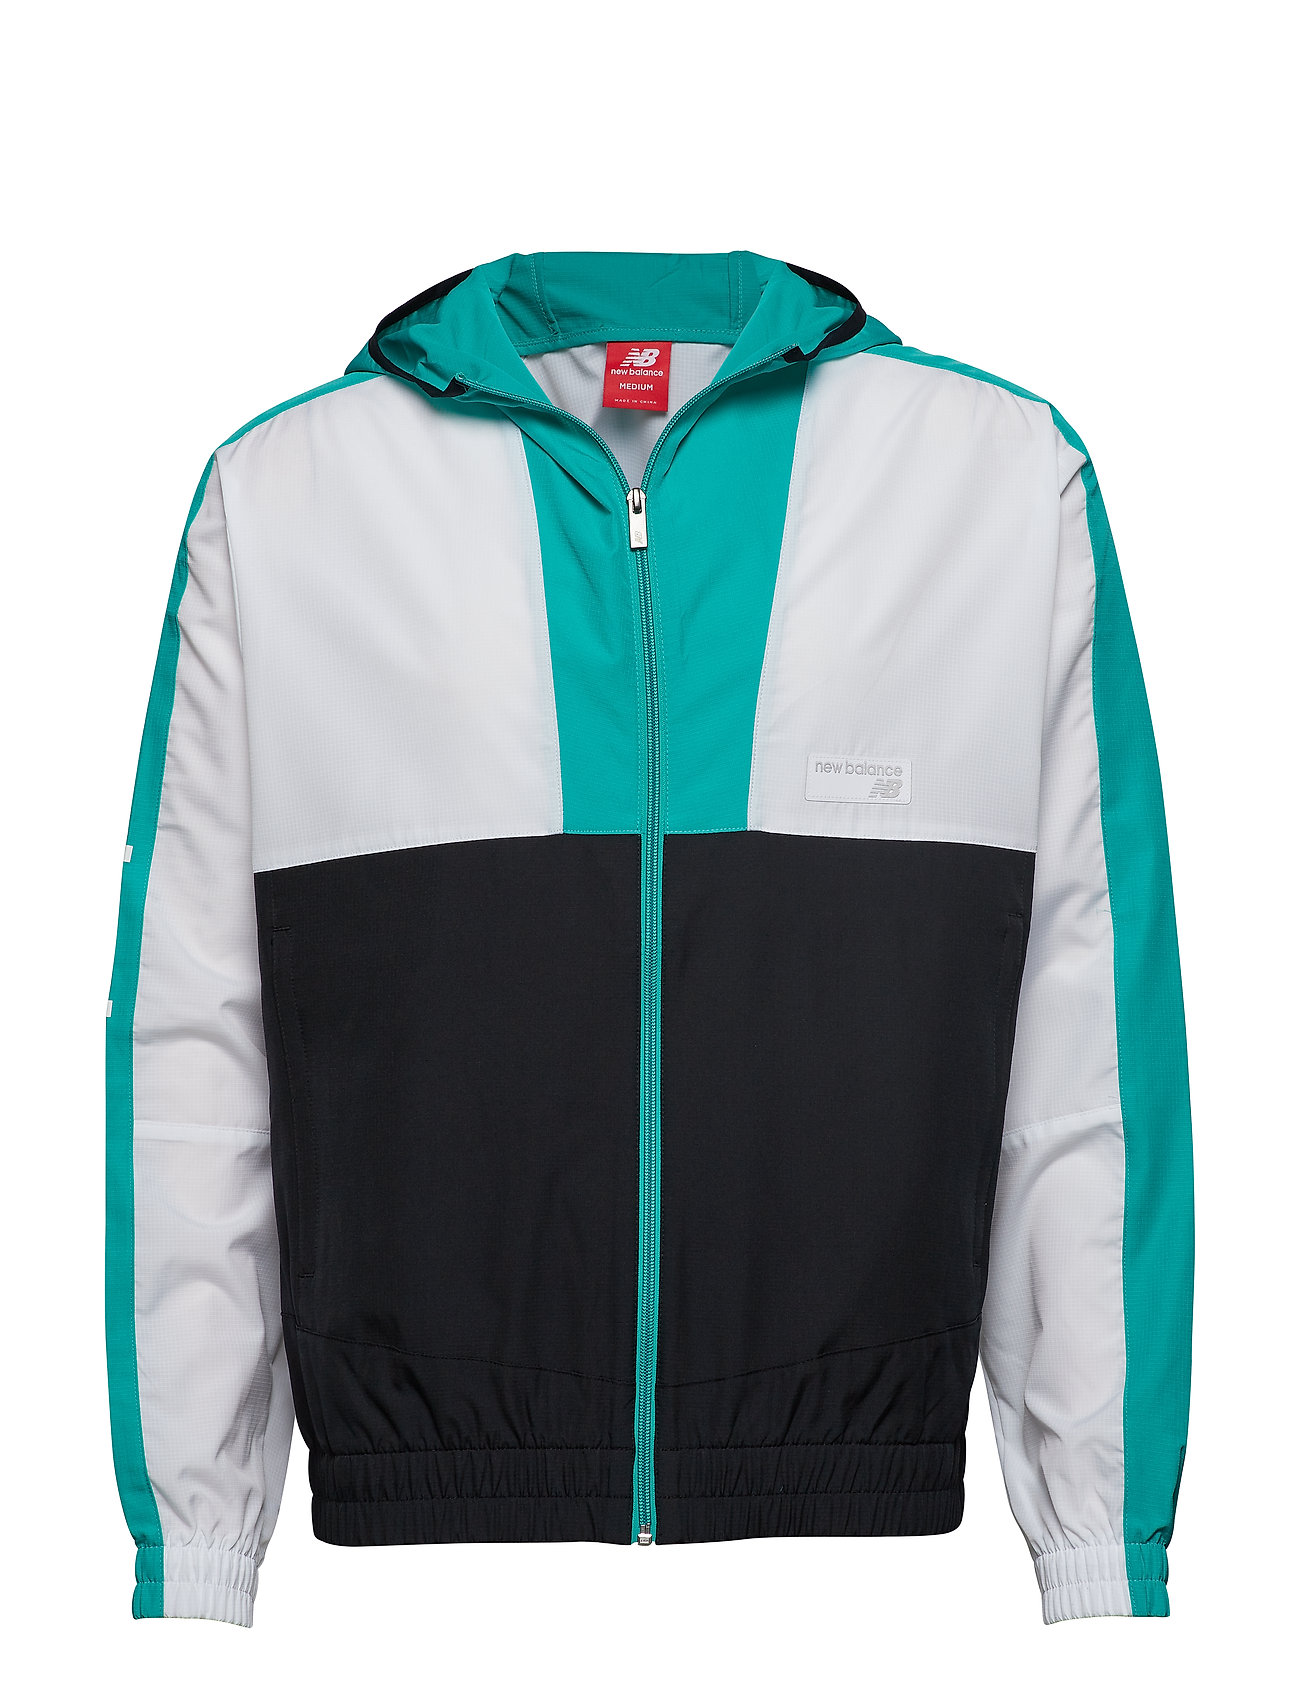 New Balance NB ATHLETICS WINDBREAKER - VERDITE